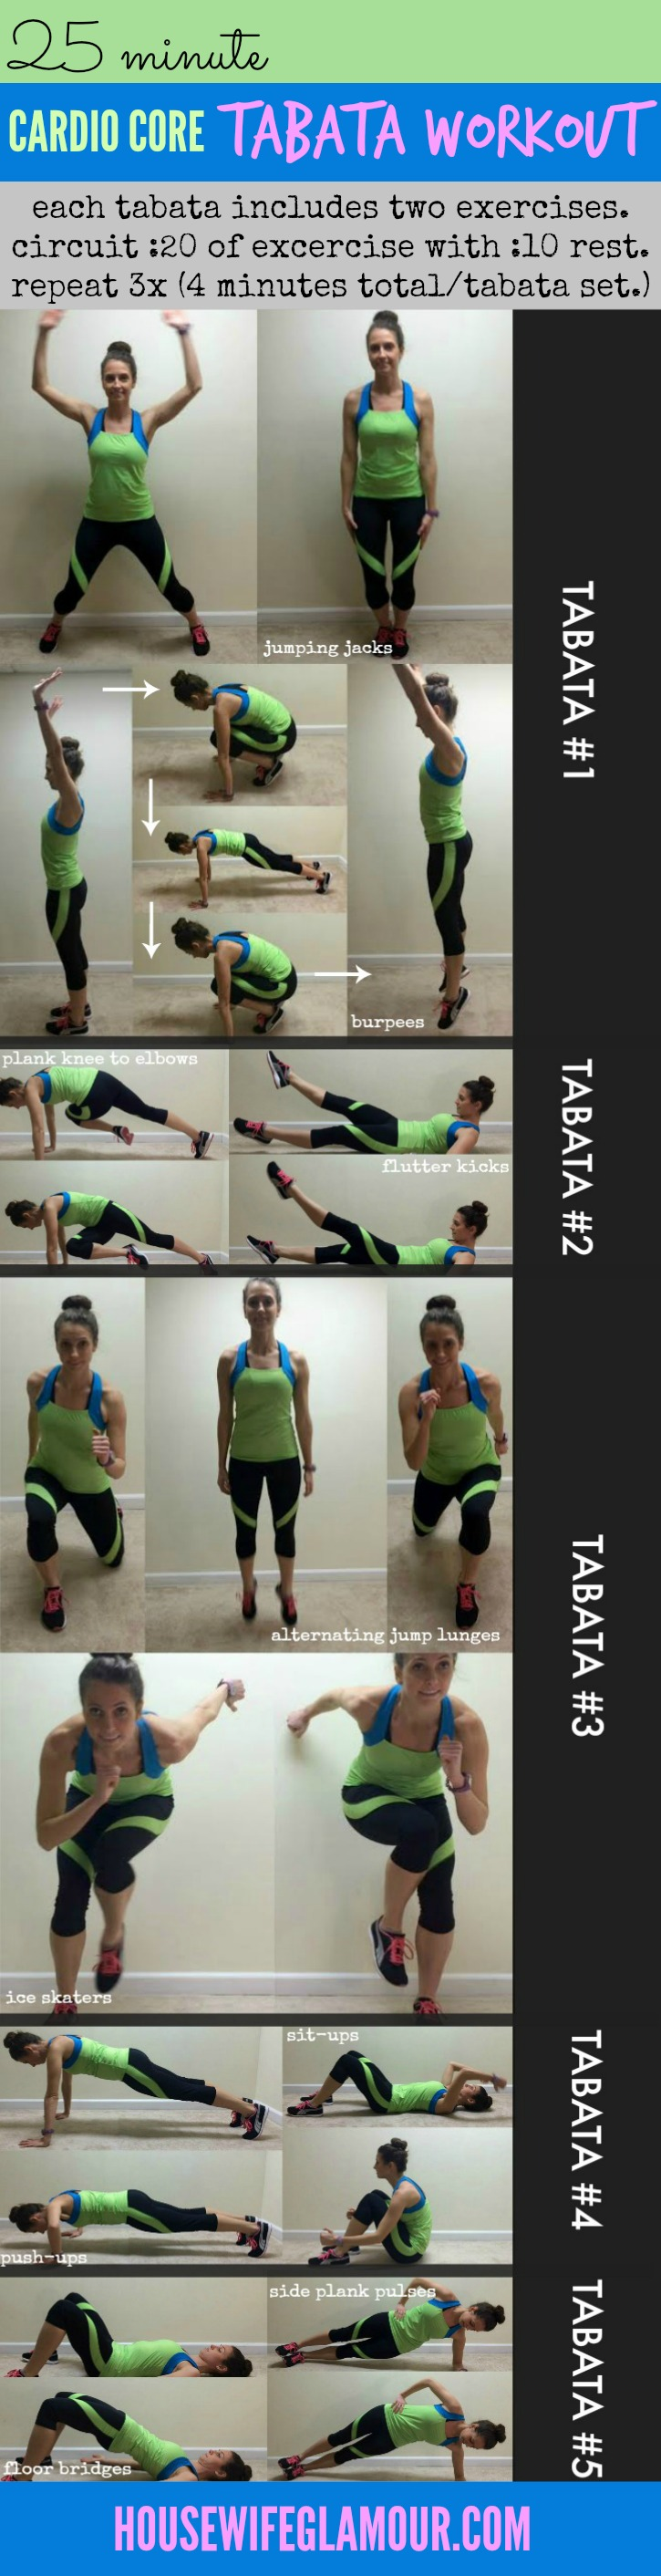 25 Min cardio core tabata workout